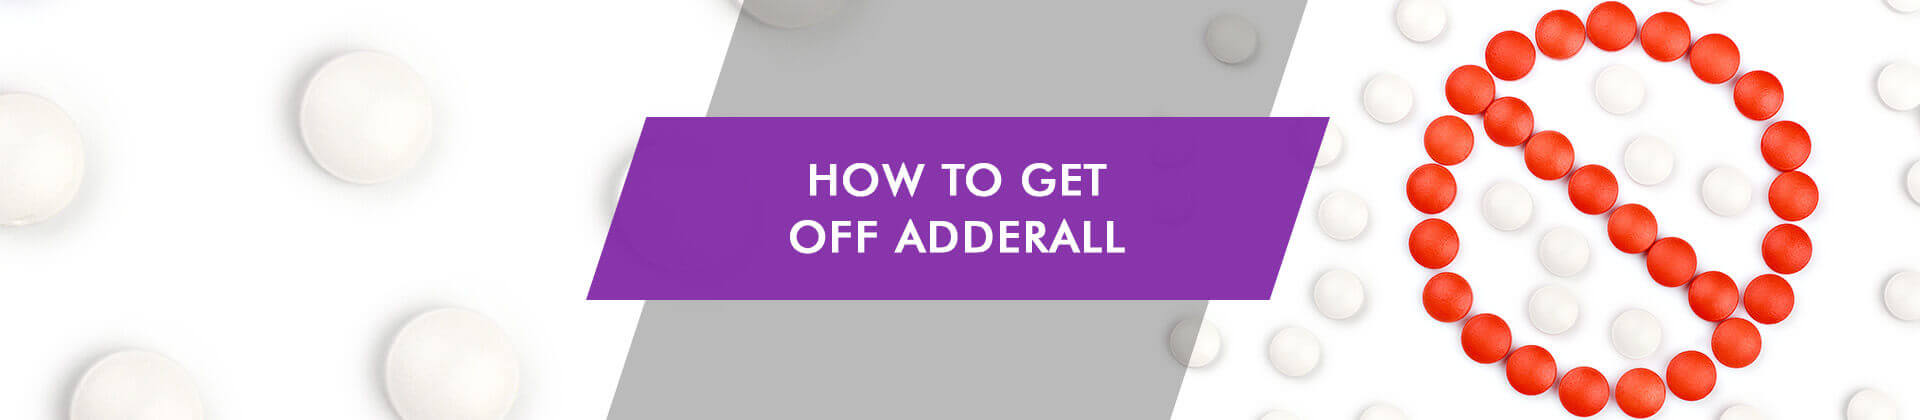 Guide on how to stop abusing Adderall